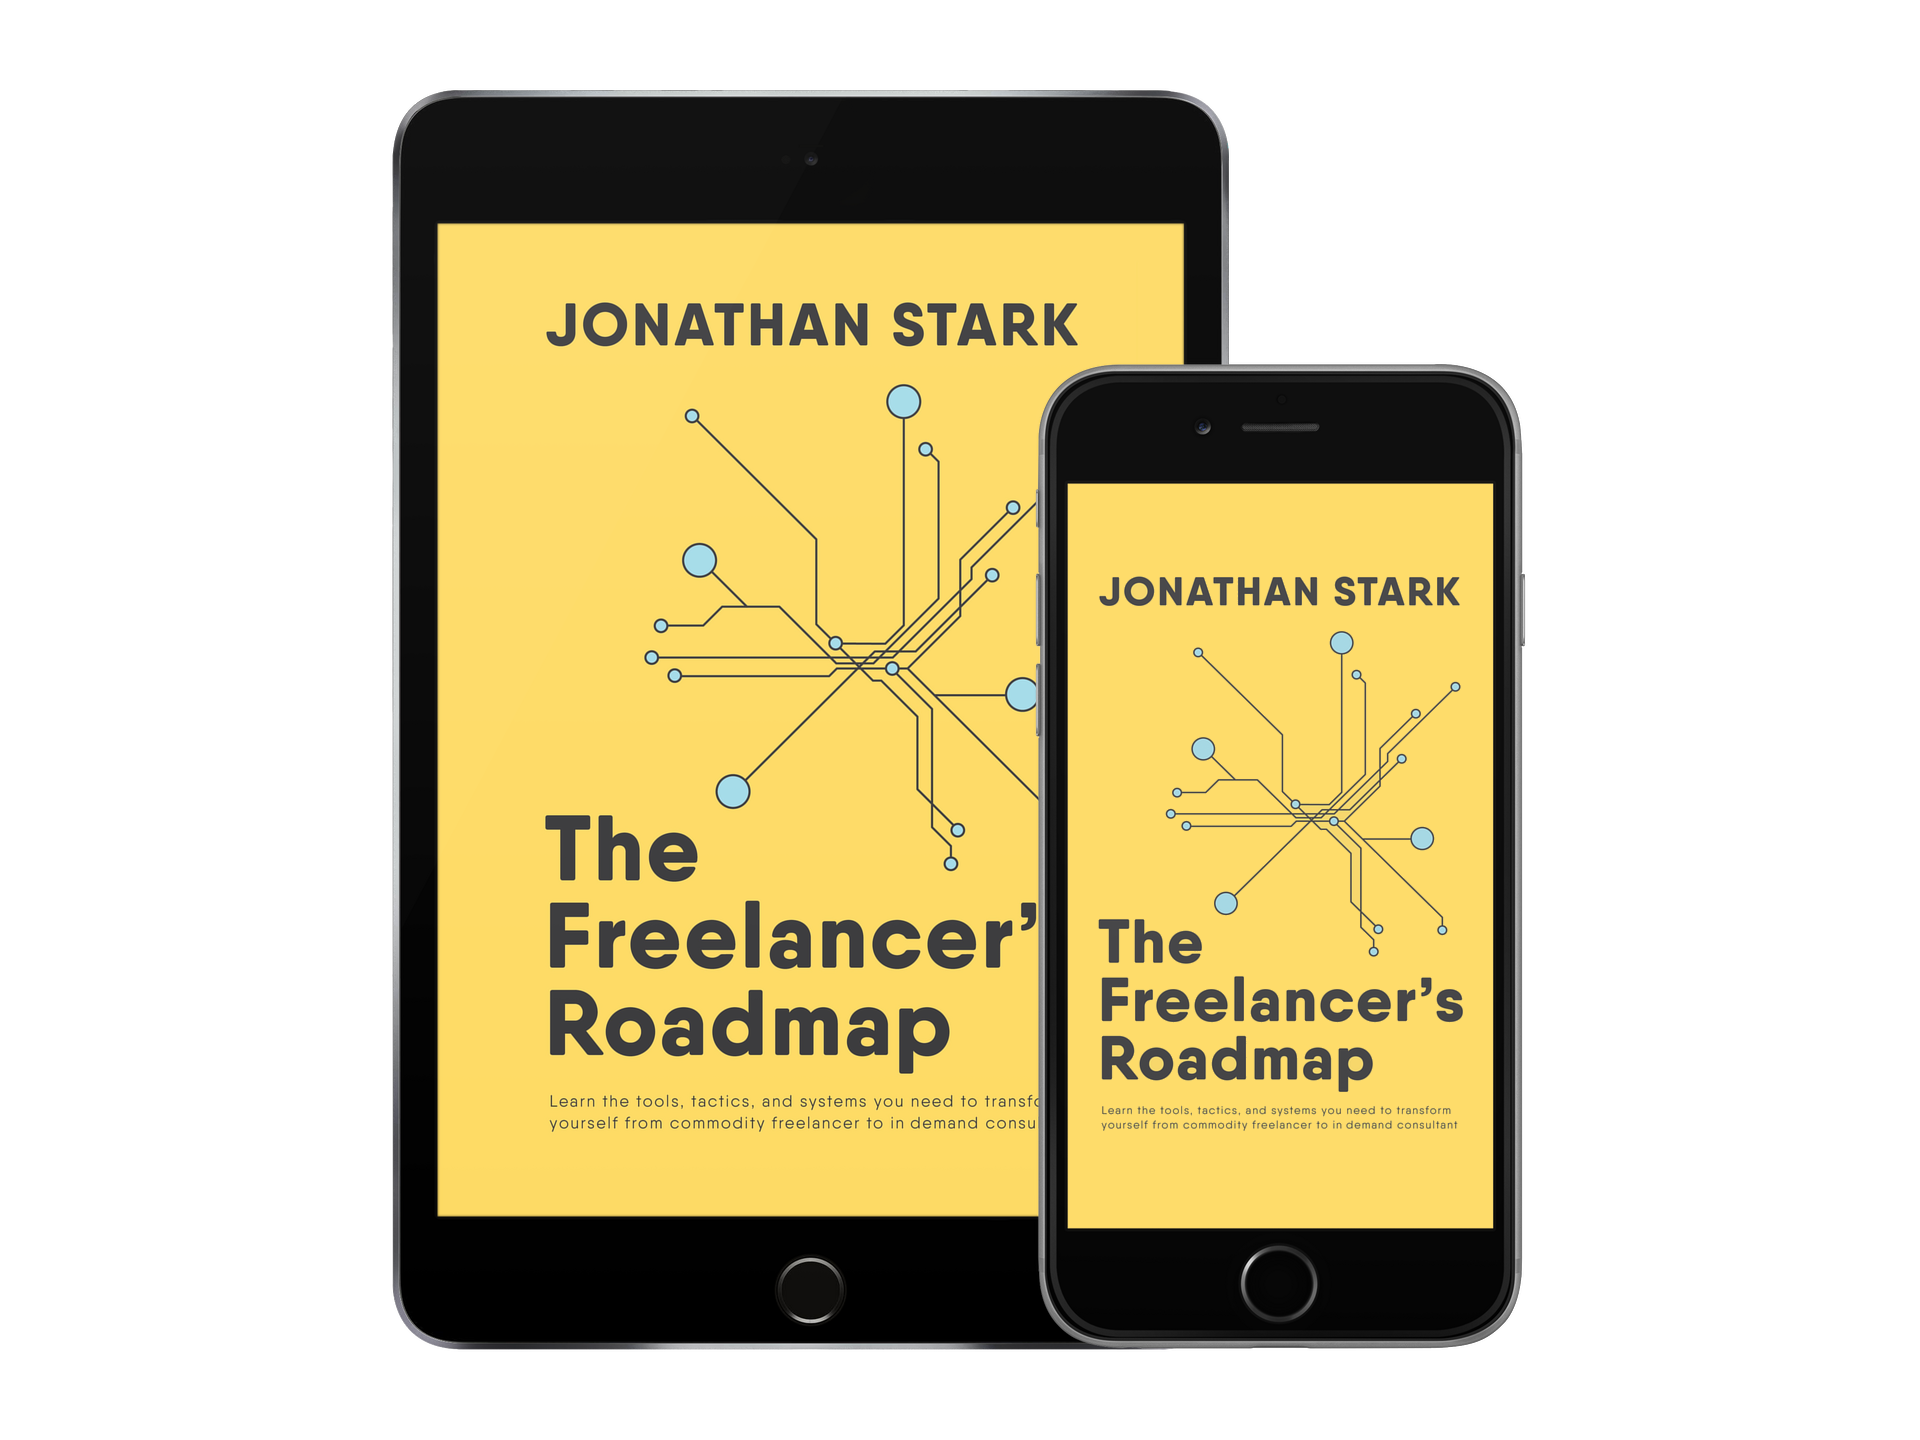 The Freelancer's Roadmap book cover